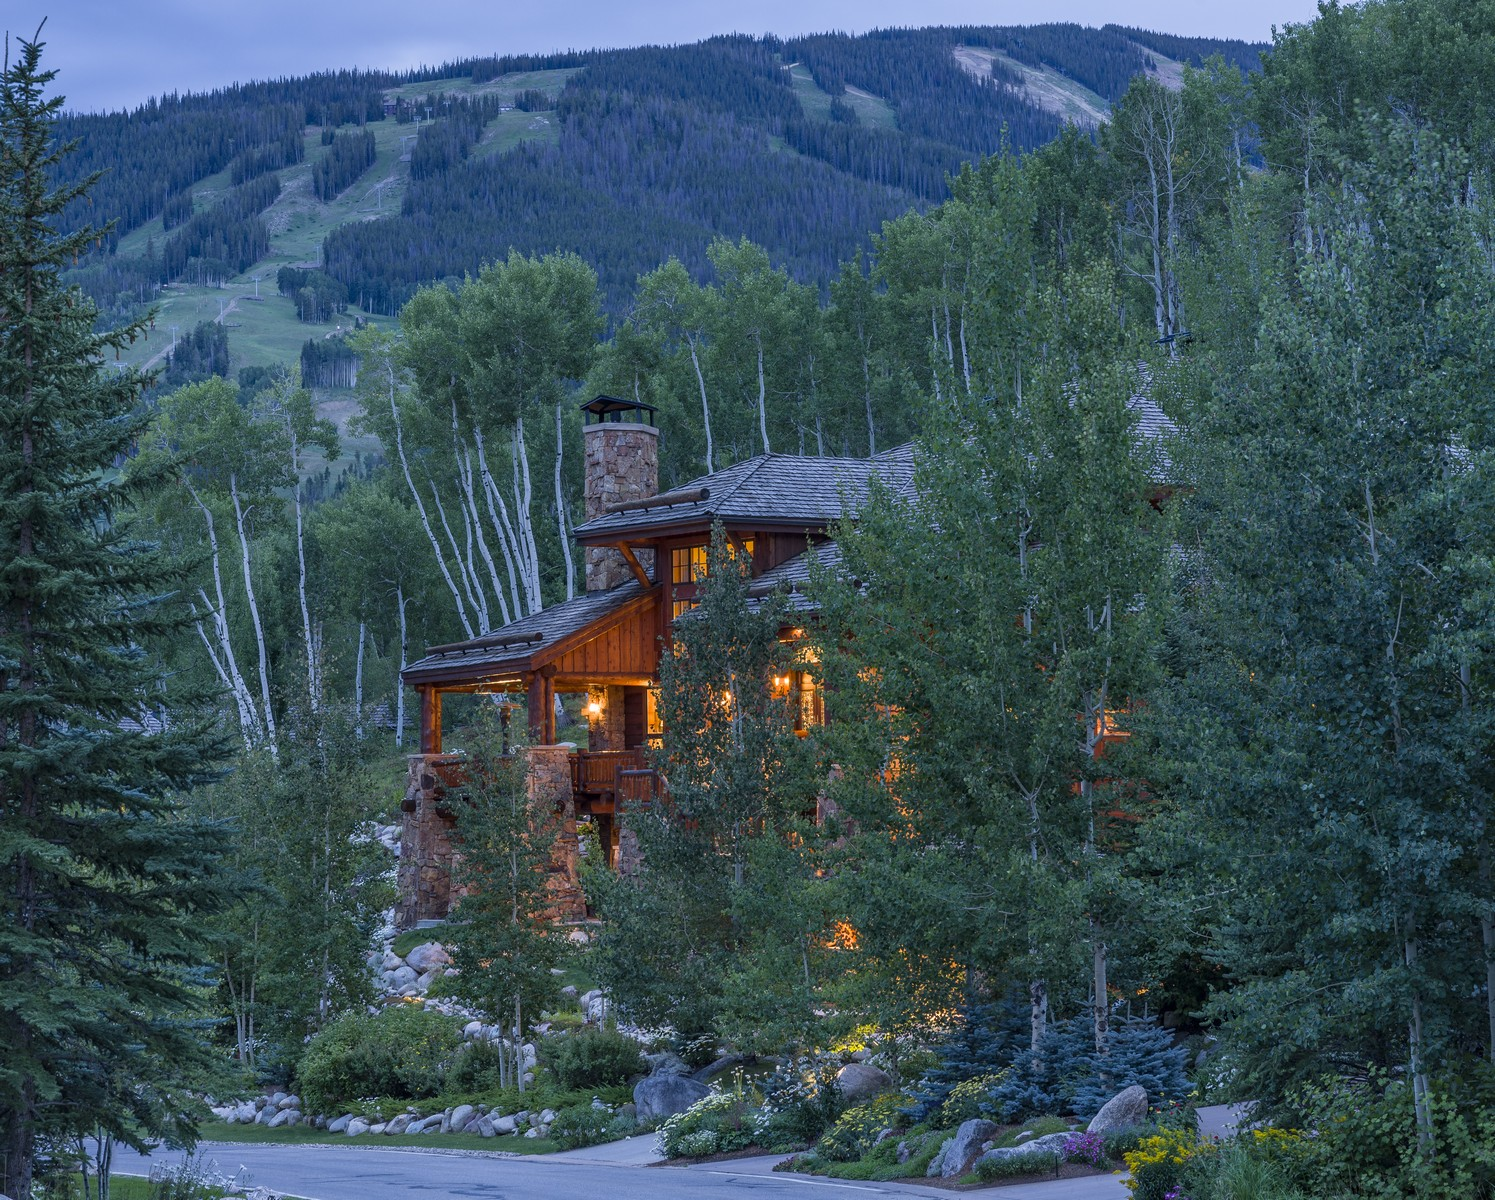 Moradia para Venda às Beaver Creek's Most Stunning Log Home 201 Borders Rd Avon, Colorado, 81620 Estados Unidos